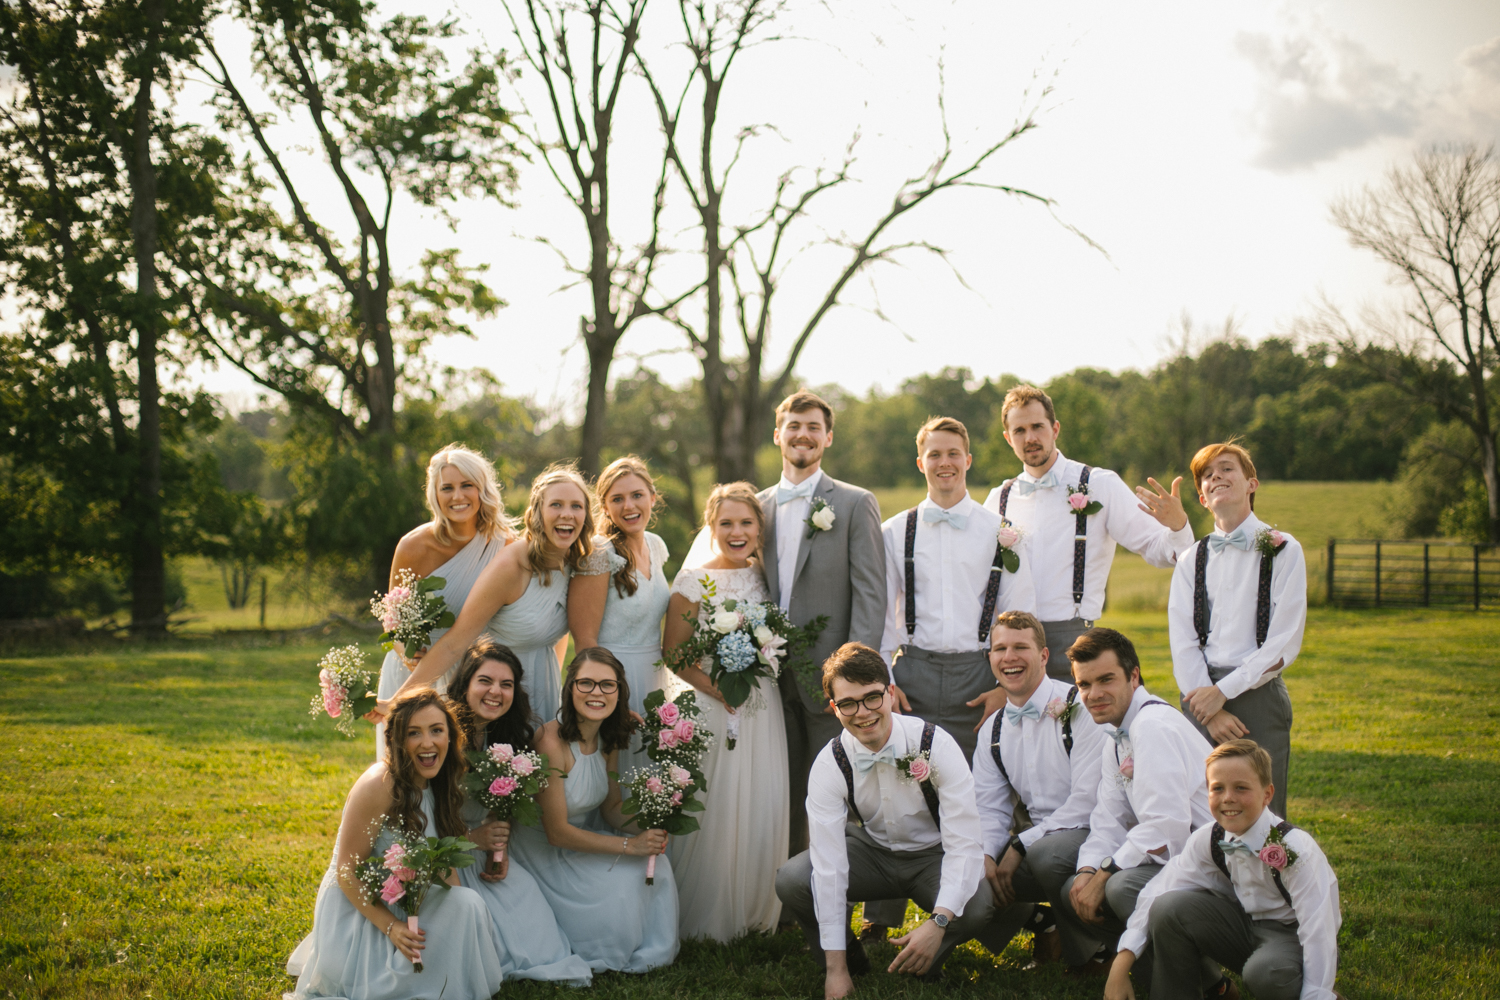 2019.06.01_CraskWedding_Starks-143.jpg